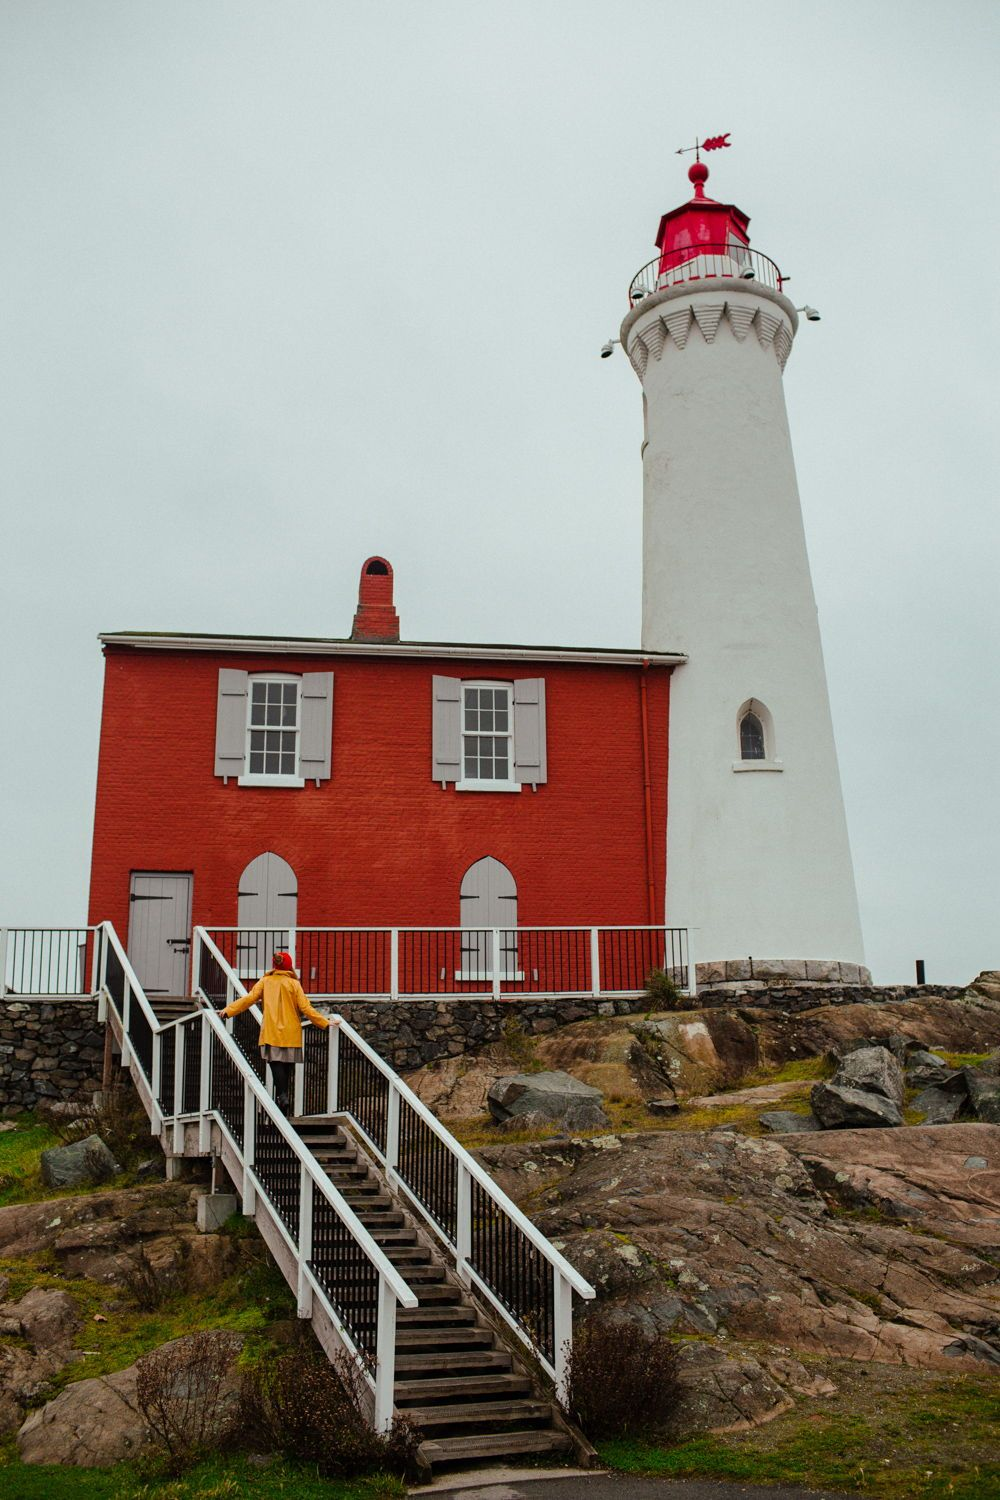 Fisgard Lighthouse Everything To Know About This Charming Lighthouse In Victoria Bc In 2020 Craigdarroch Castle Lighthouse Hatley Castle